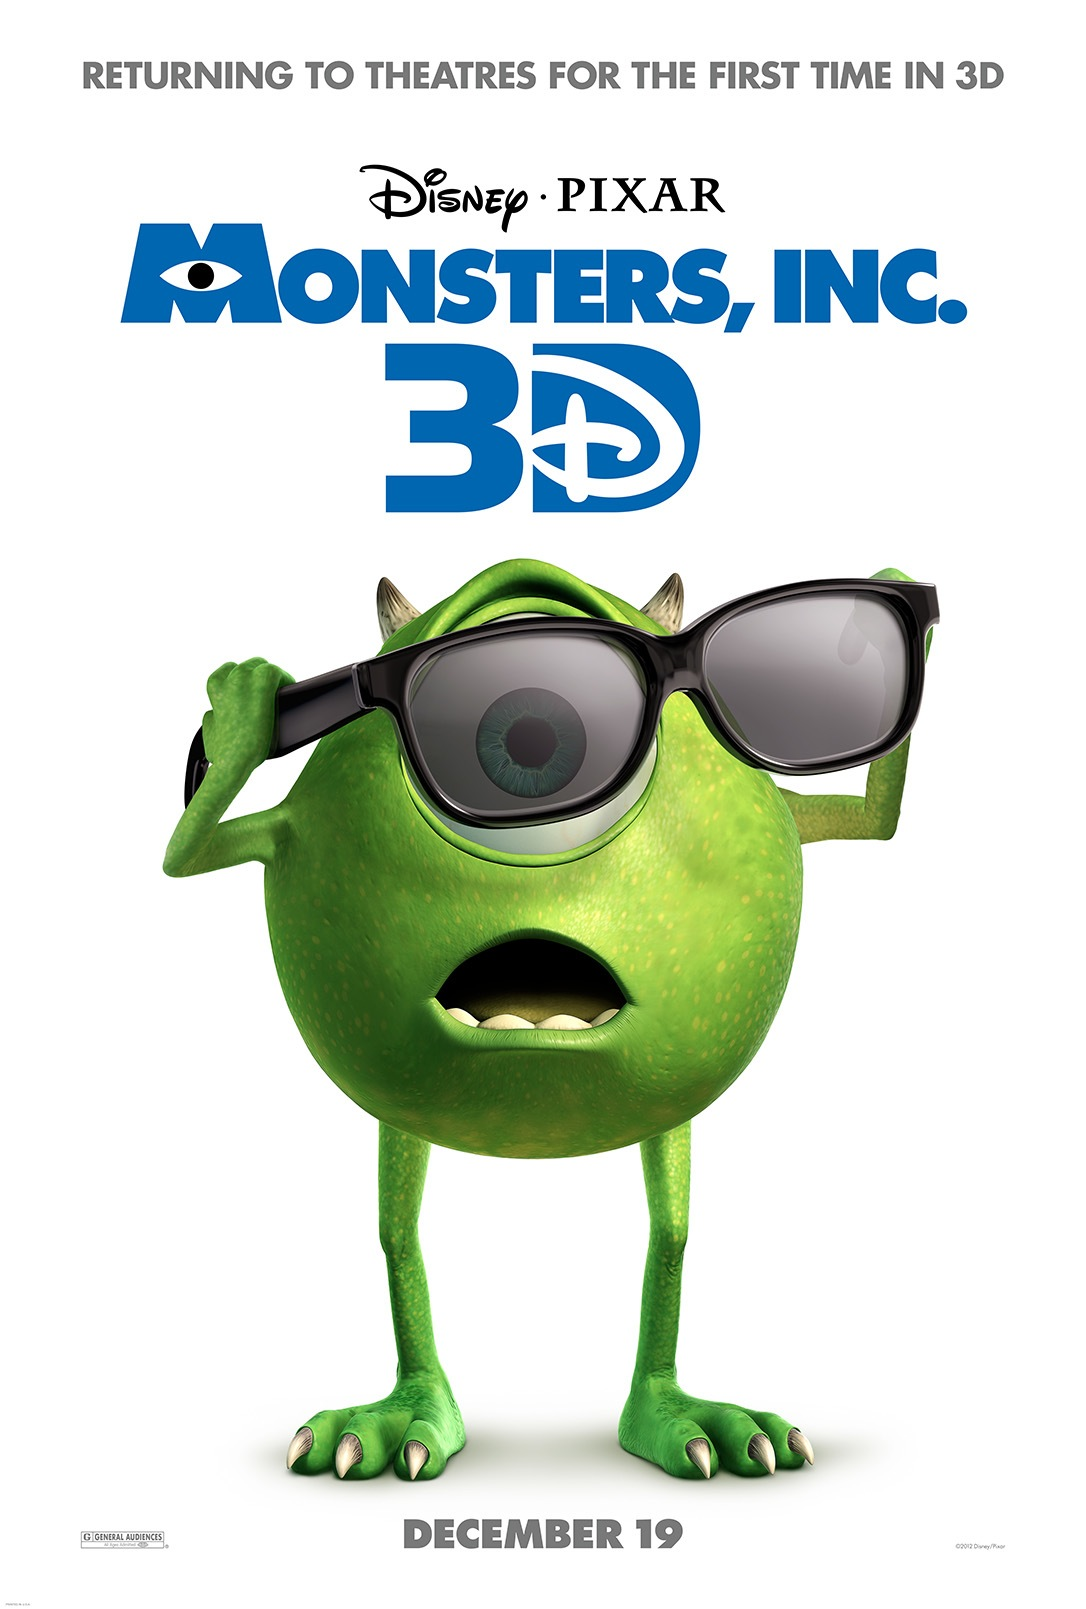 Watch: 'Monsters, Inc. 3D' Trailer